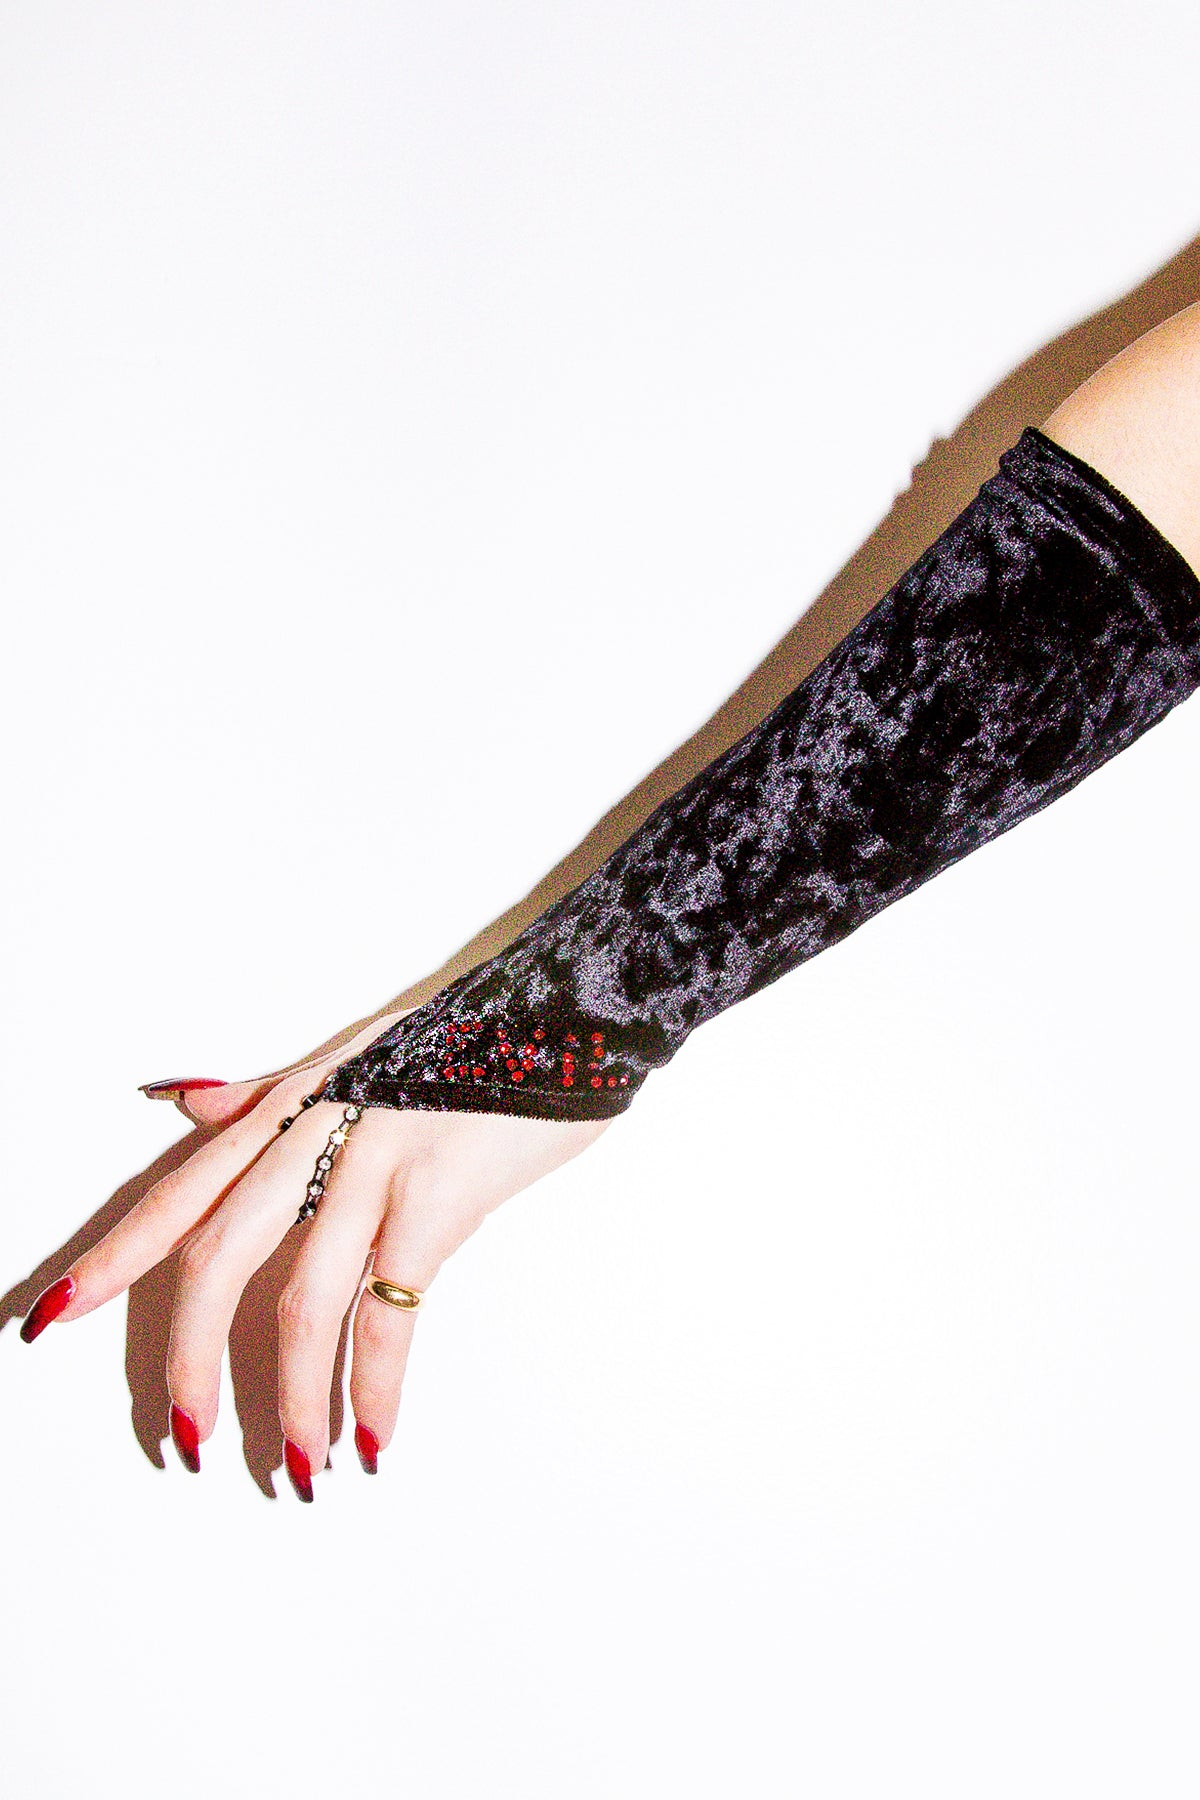 CU$TOM ☆Heavenly Glam Fingerless Glove☆